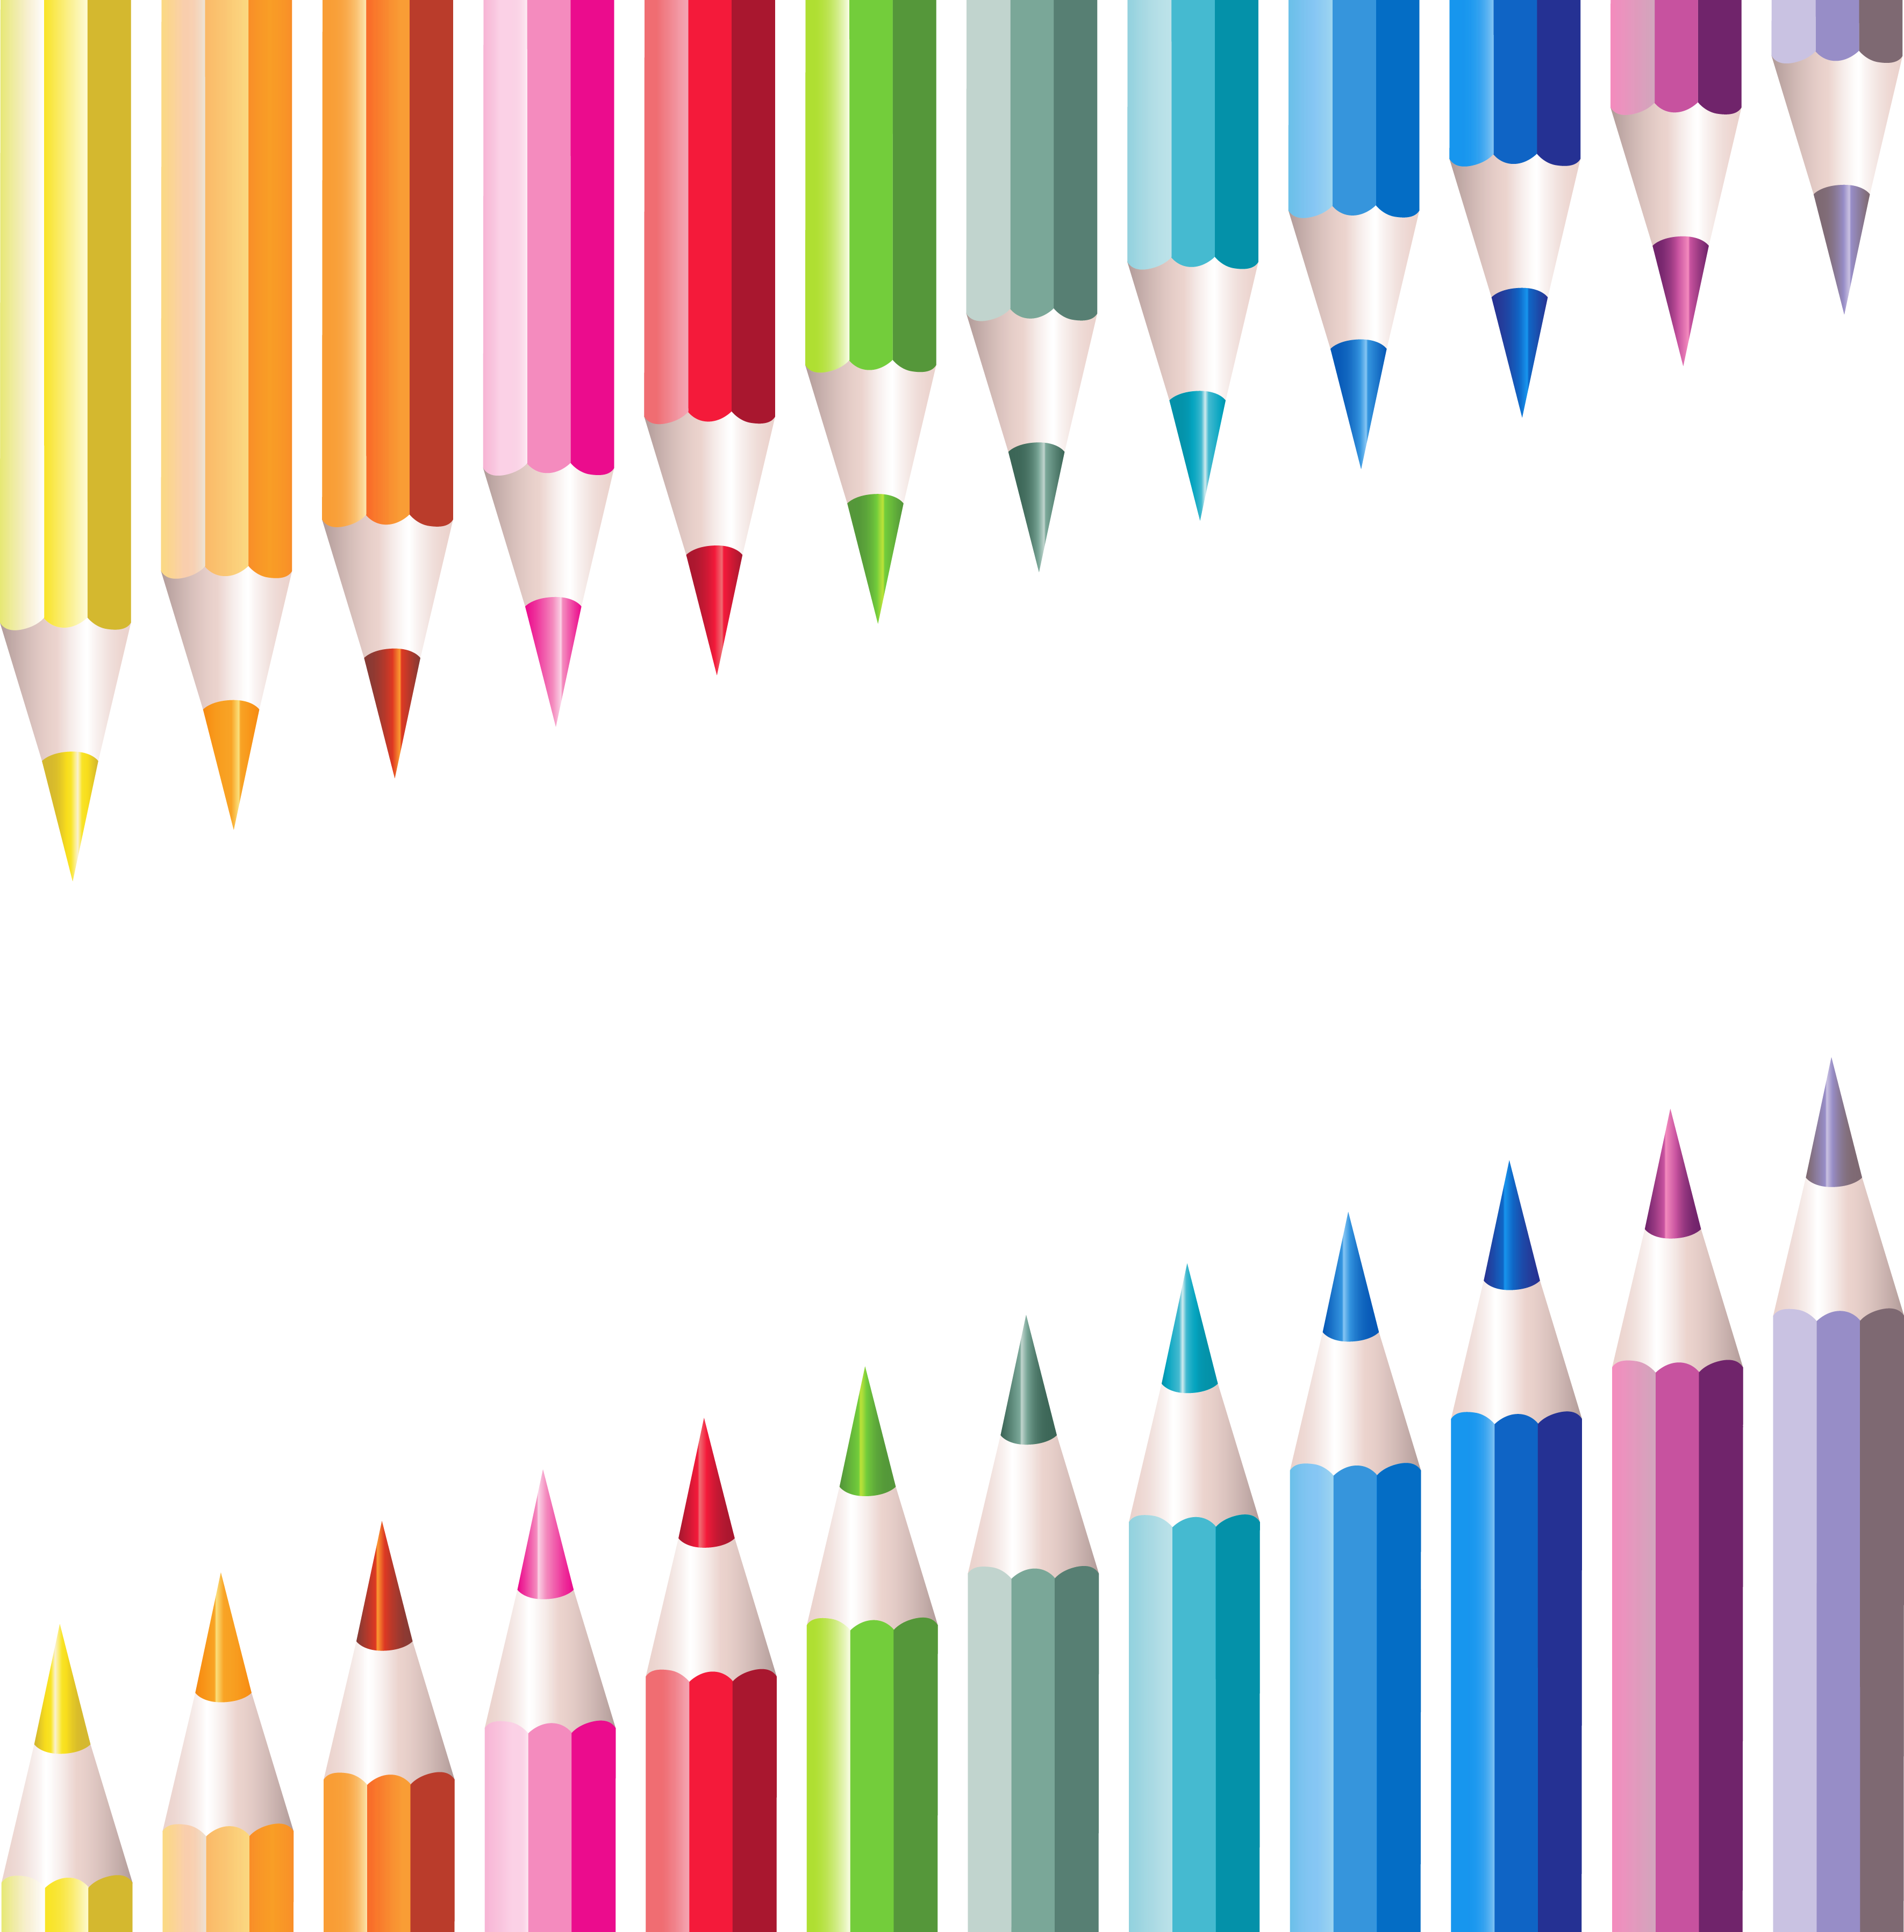 School stationery clipart image black and white download Transparent School Pencils Decoration | Gallery Yopriceville - High ... image black and white download